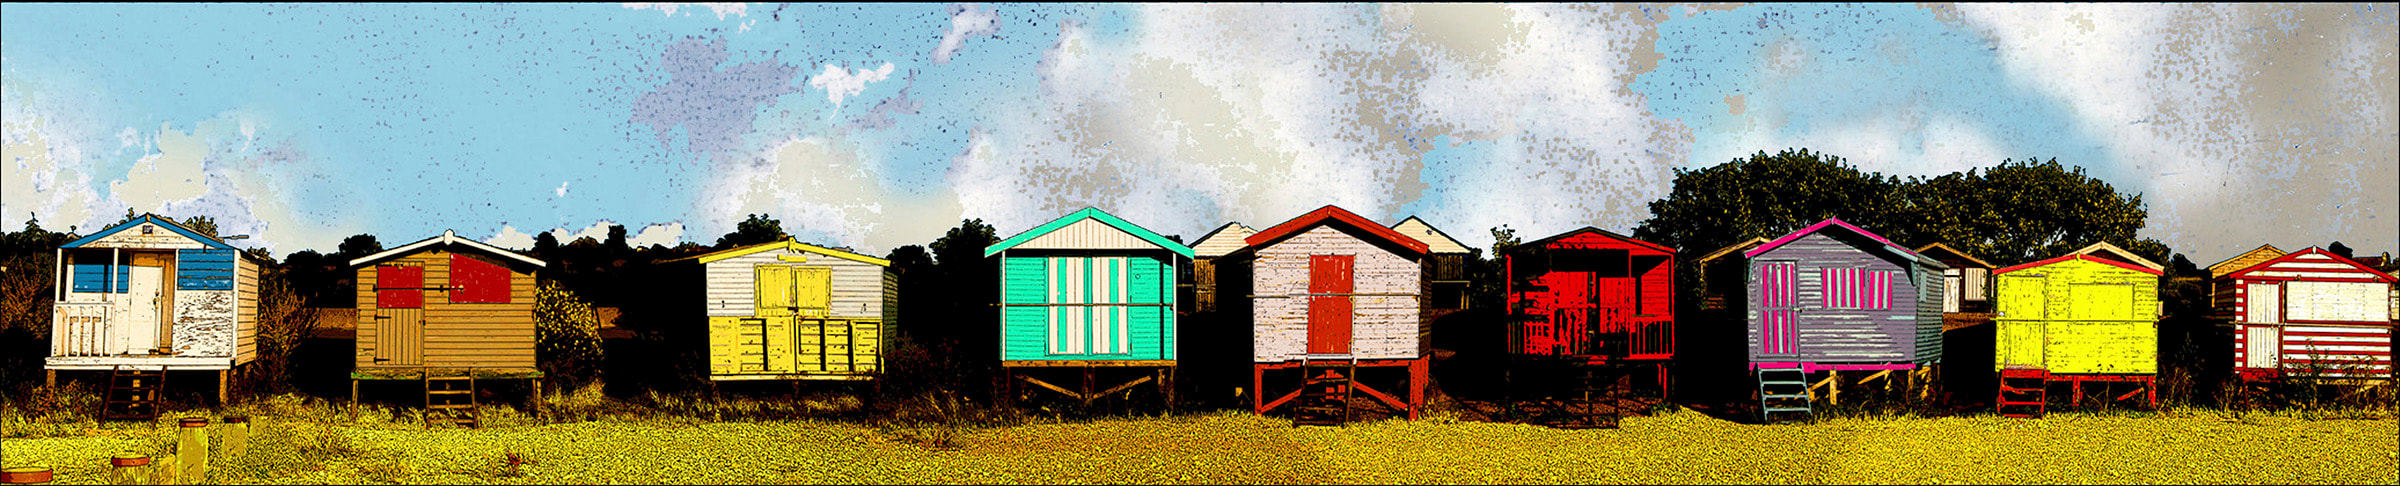 beach huts,whitstable,west beach